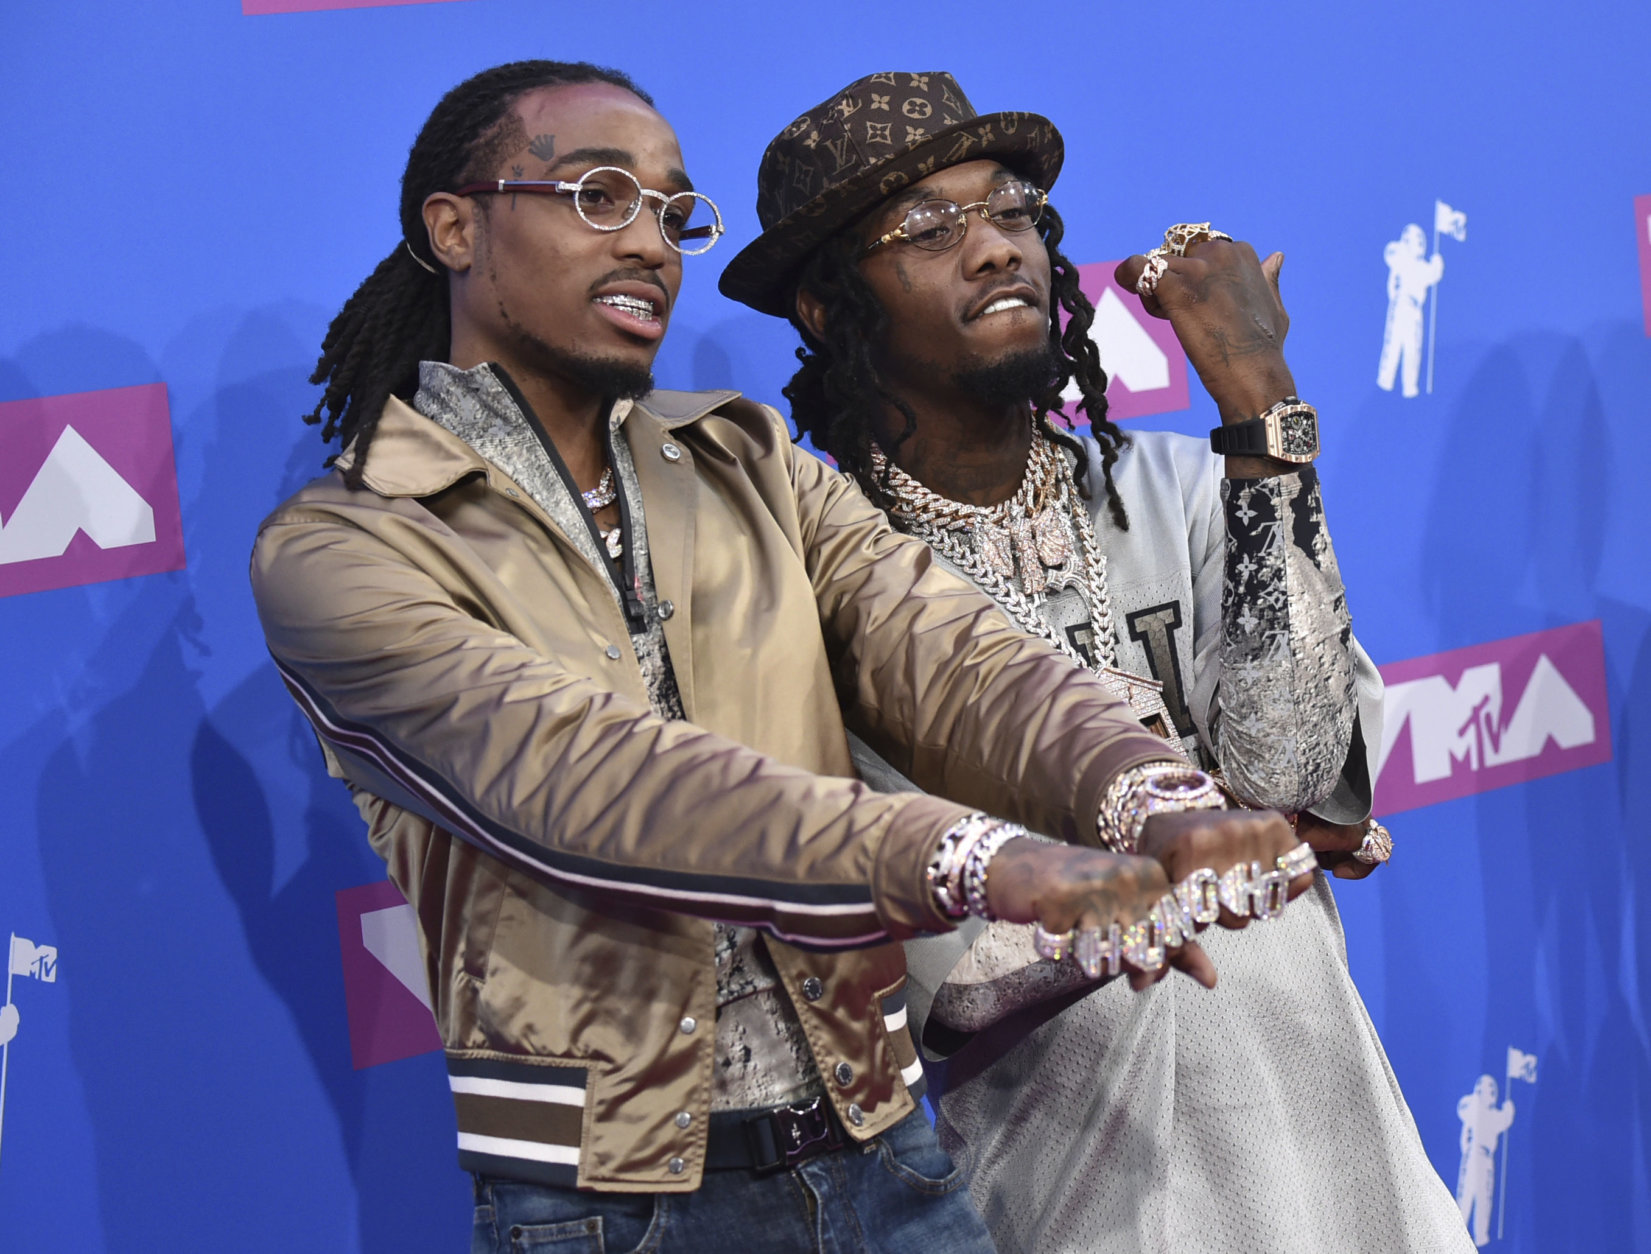 Offset, left, and Quavo of Migos arrive at the MTV Video Music Awards at Radio City Music Hall on Monday, Aug. 20, 2018, in New York. (Photo by Evan Agostini/Invision/AP)